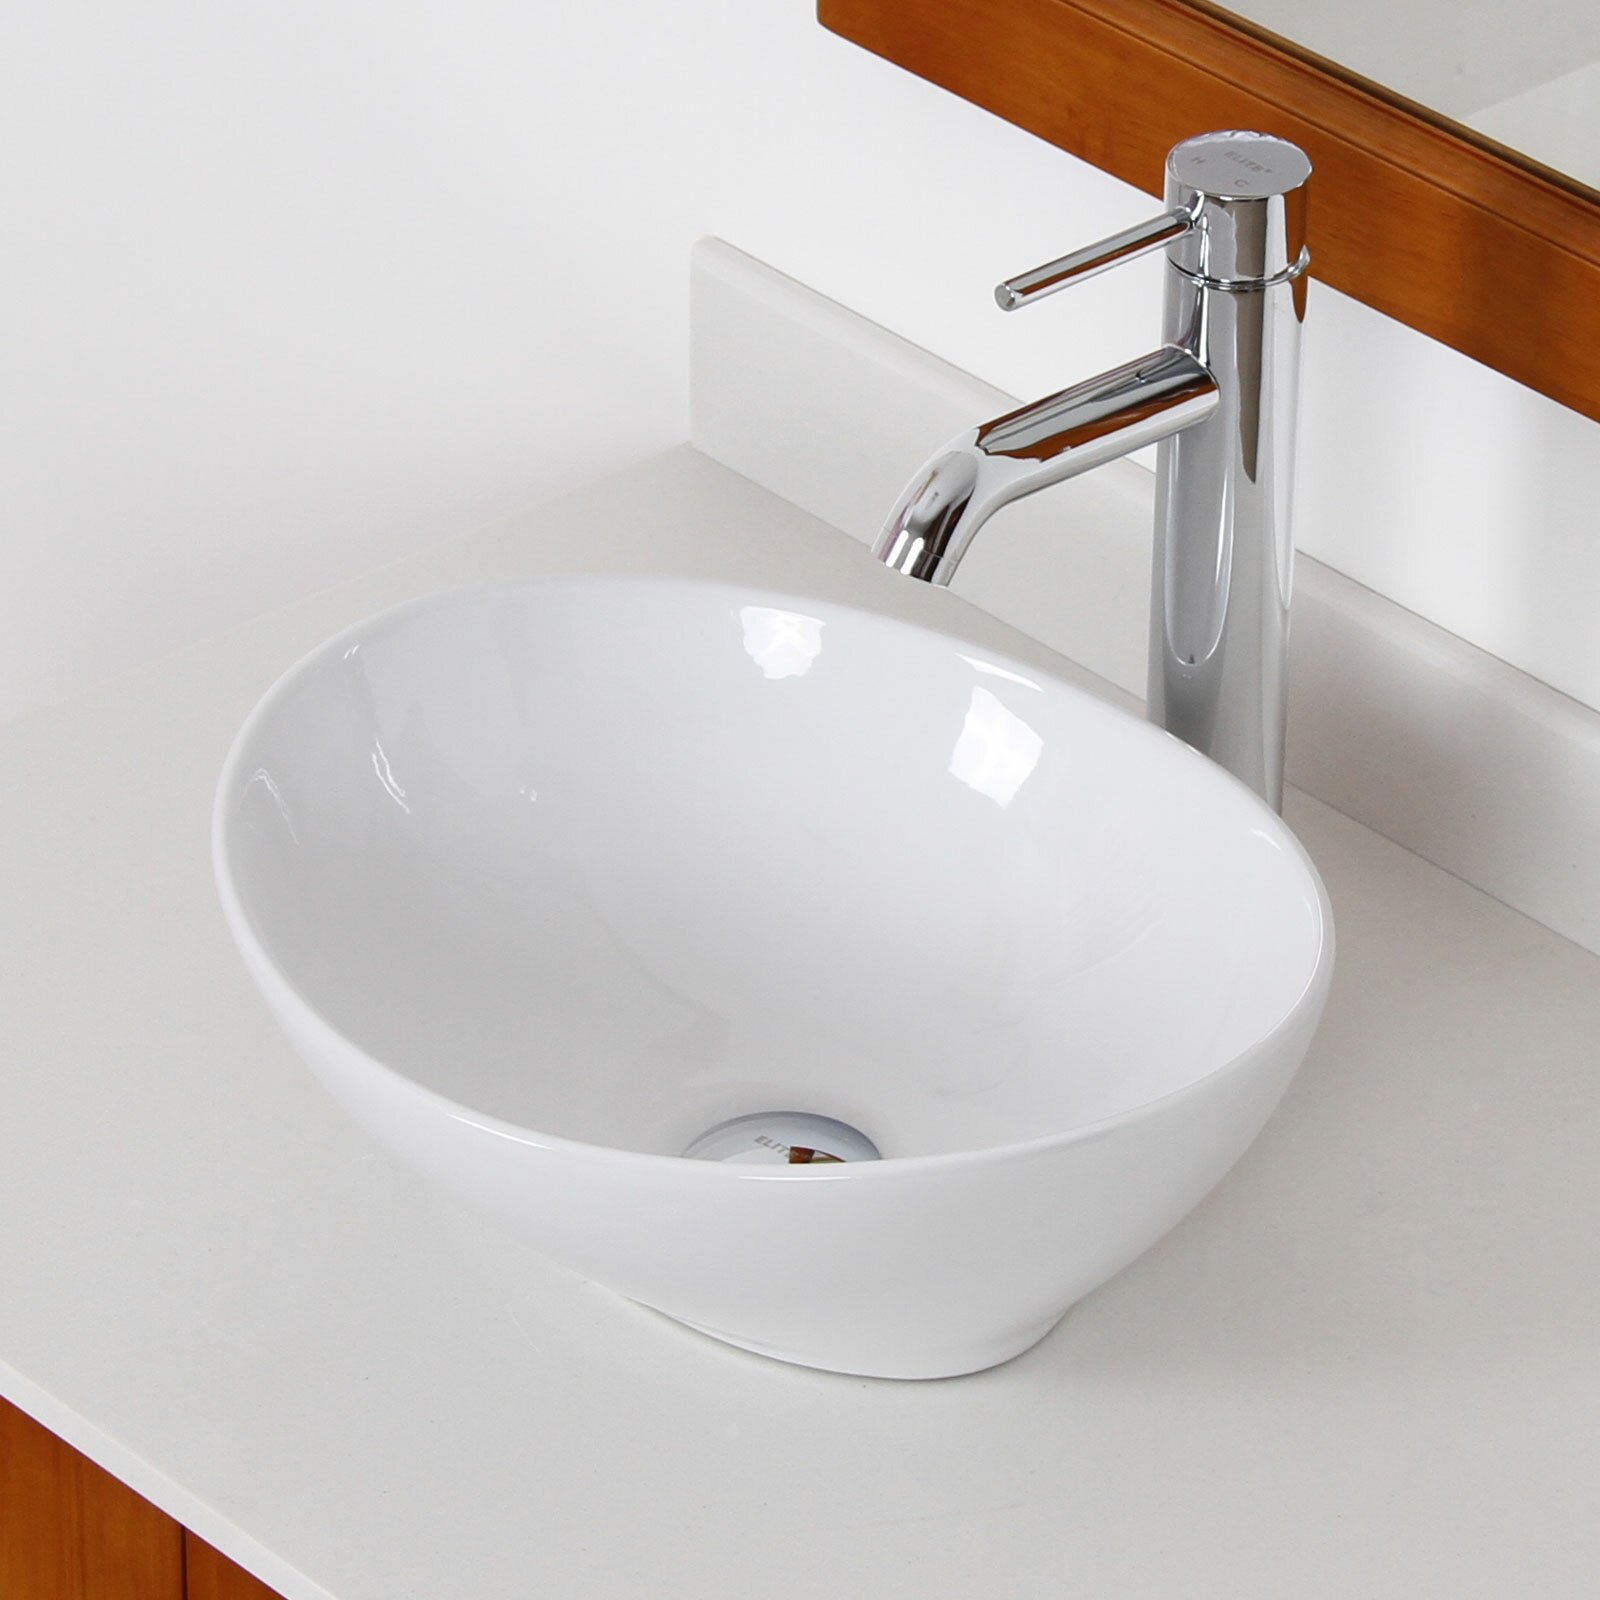 Elite Bathroom Sinks : Elite Ceramic Oval Vessel Bathroom Sink & Reviews Wayfair.ca